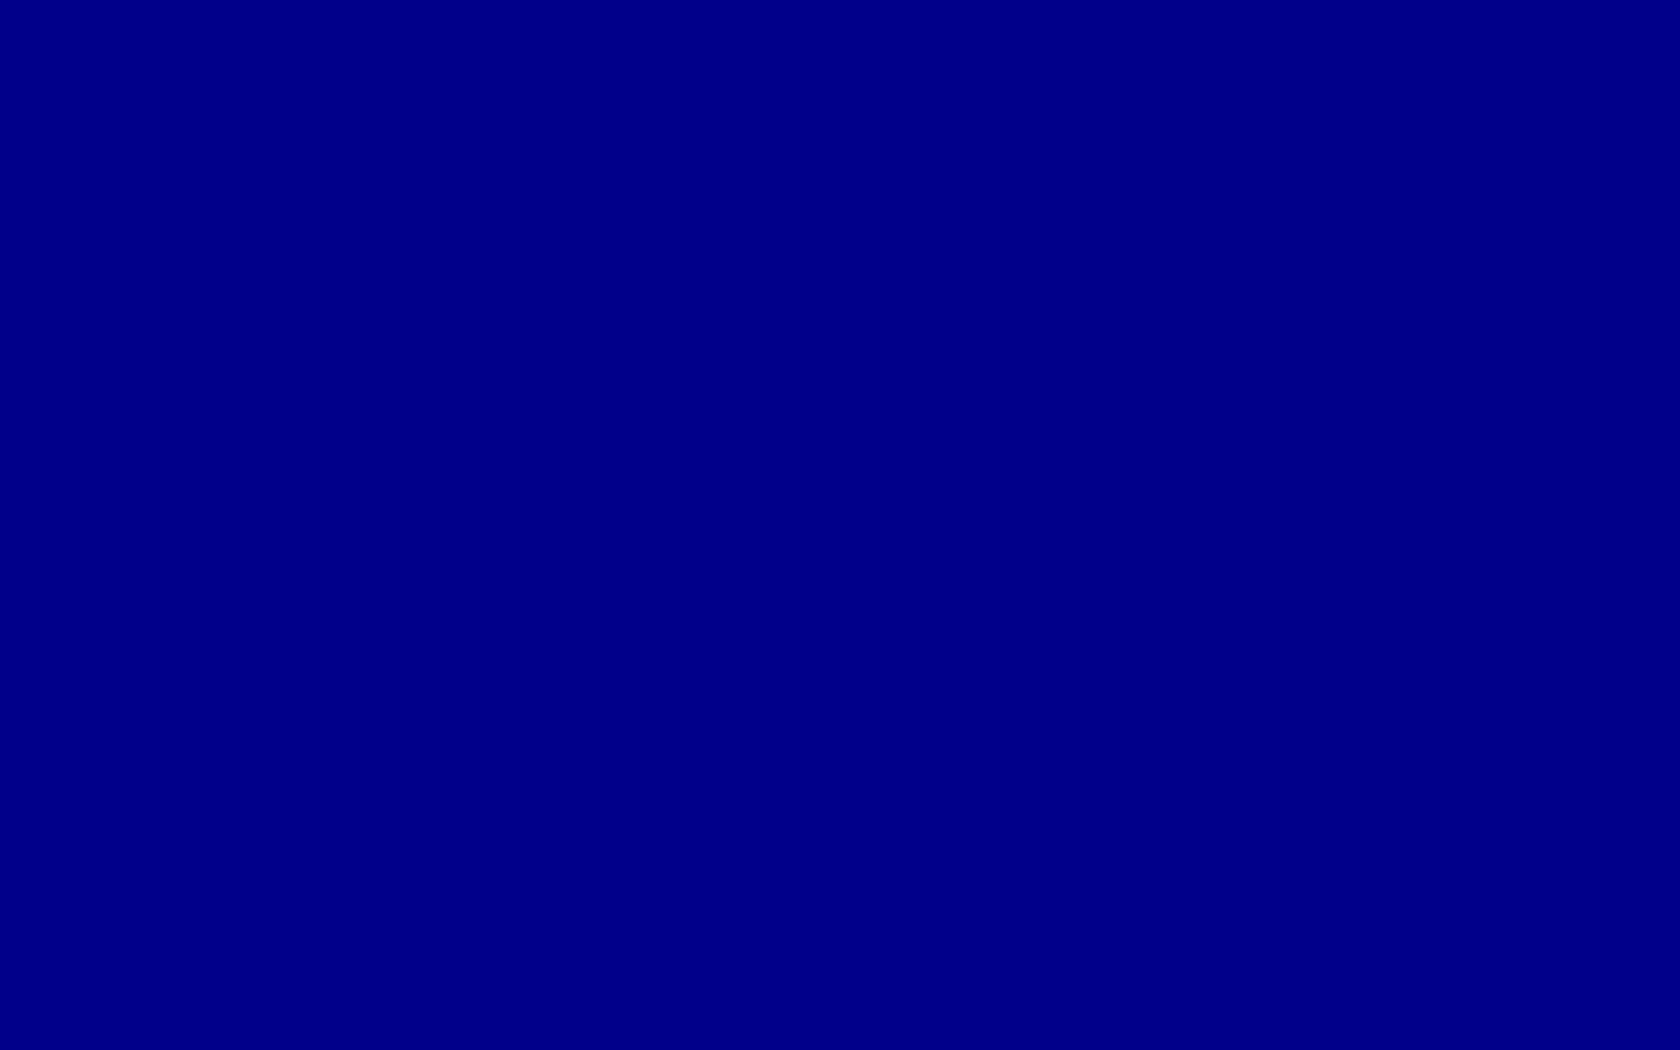 1680x1050 Dark Blue Solid Color Background